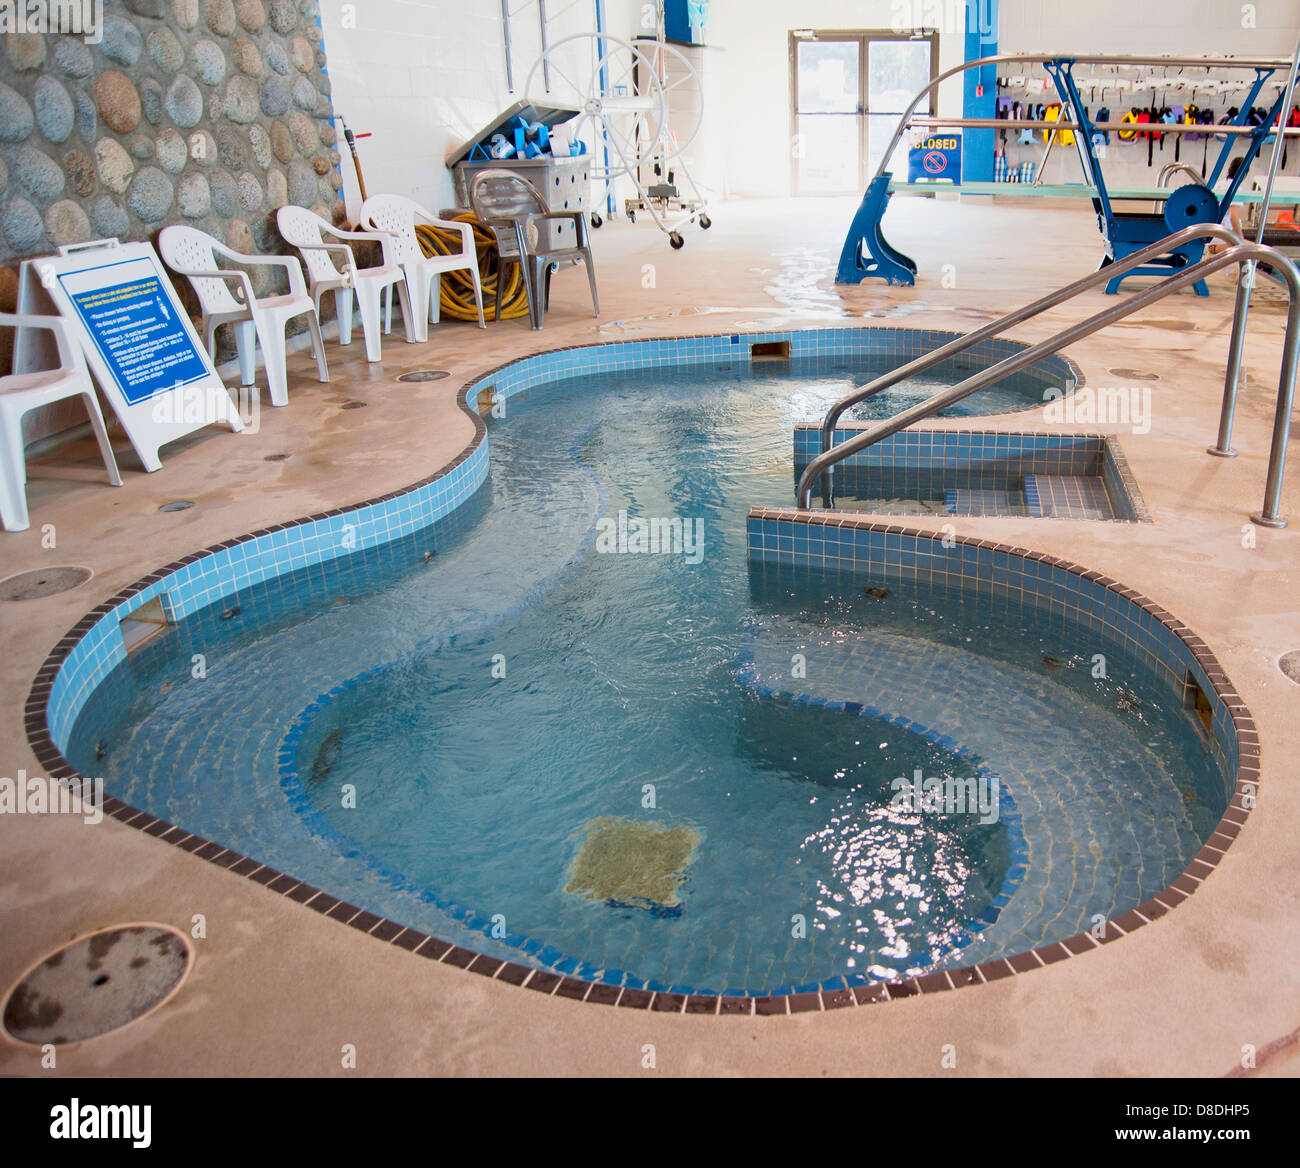 Public Hot Tub Stock Photos & Public Hot Tub Stock Images - Alamy